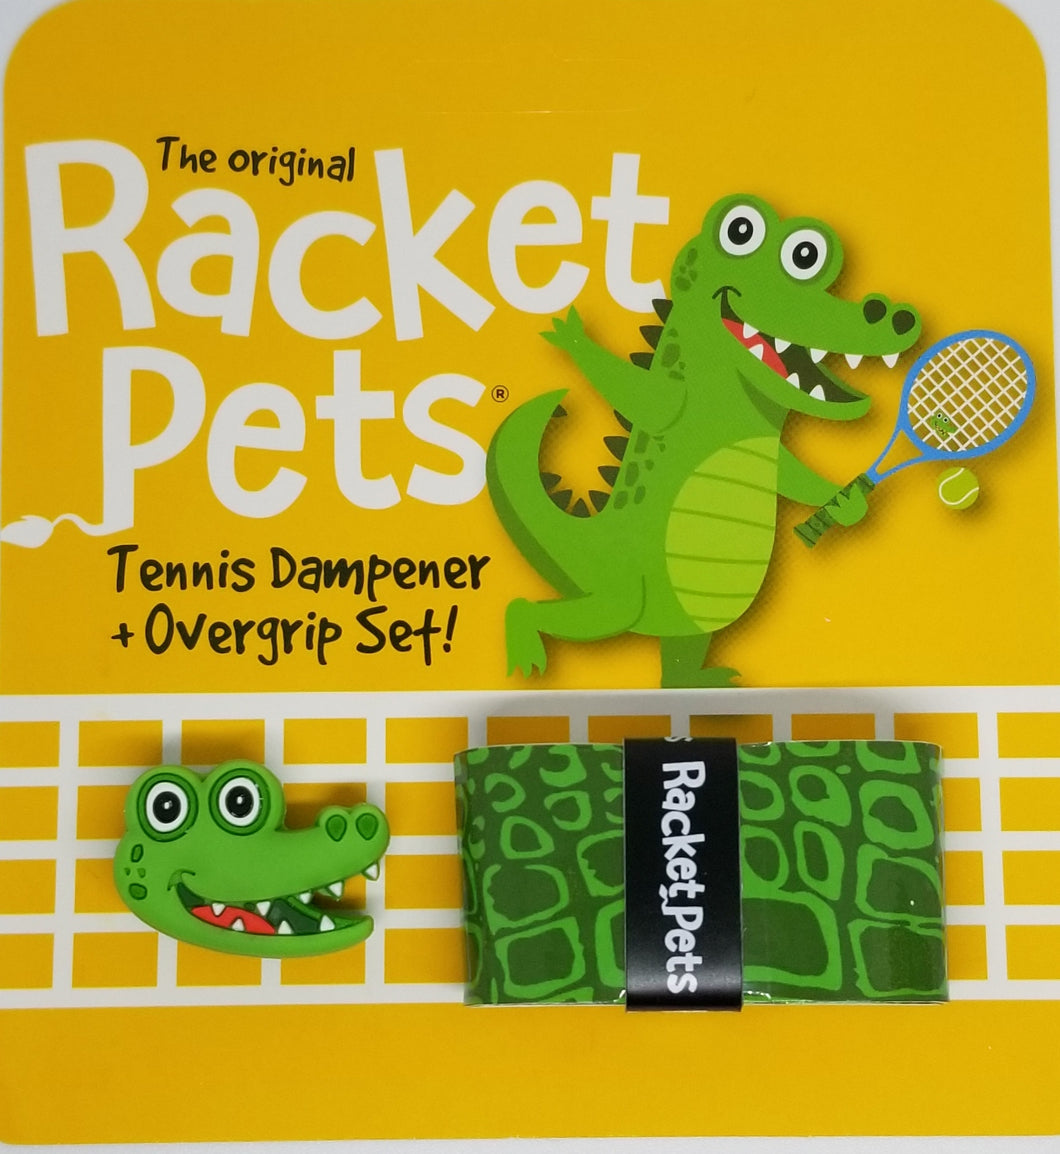 Tennis dampener alligator